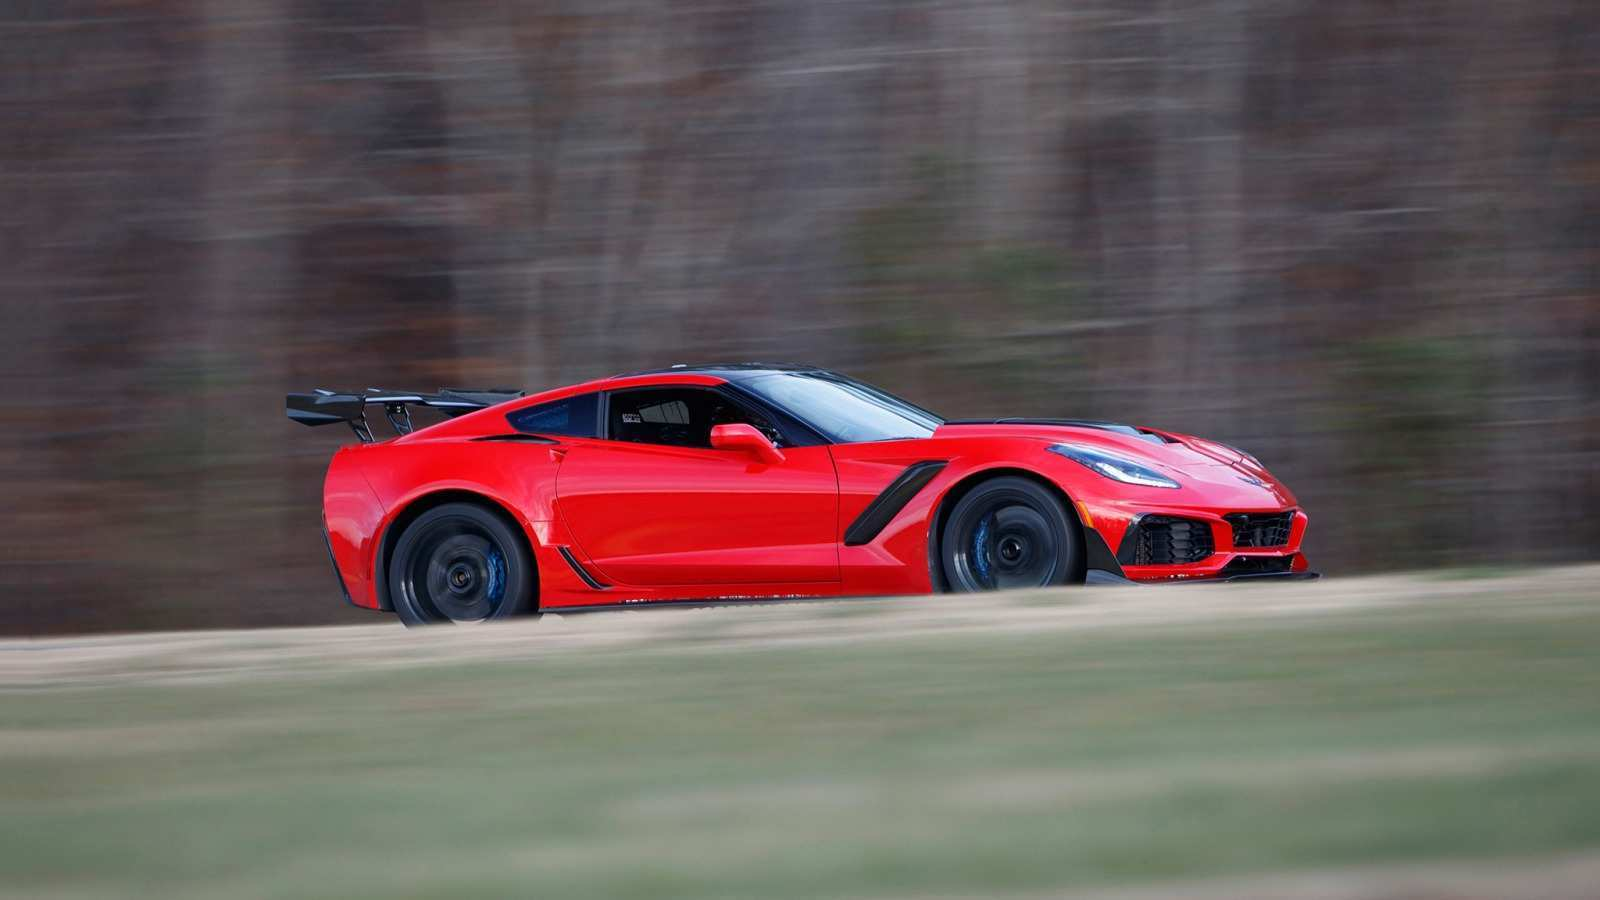 54 Best 2019 Chevrolet Corvette Price New Review